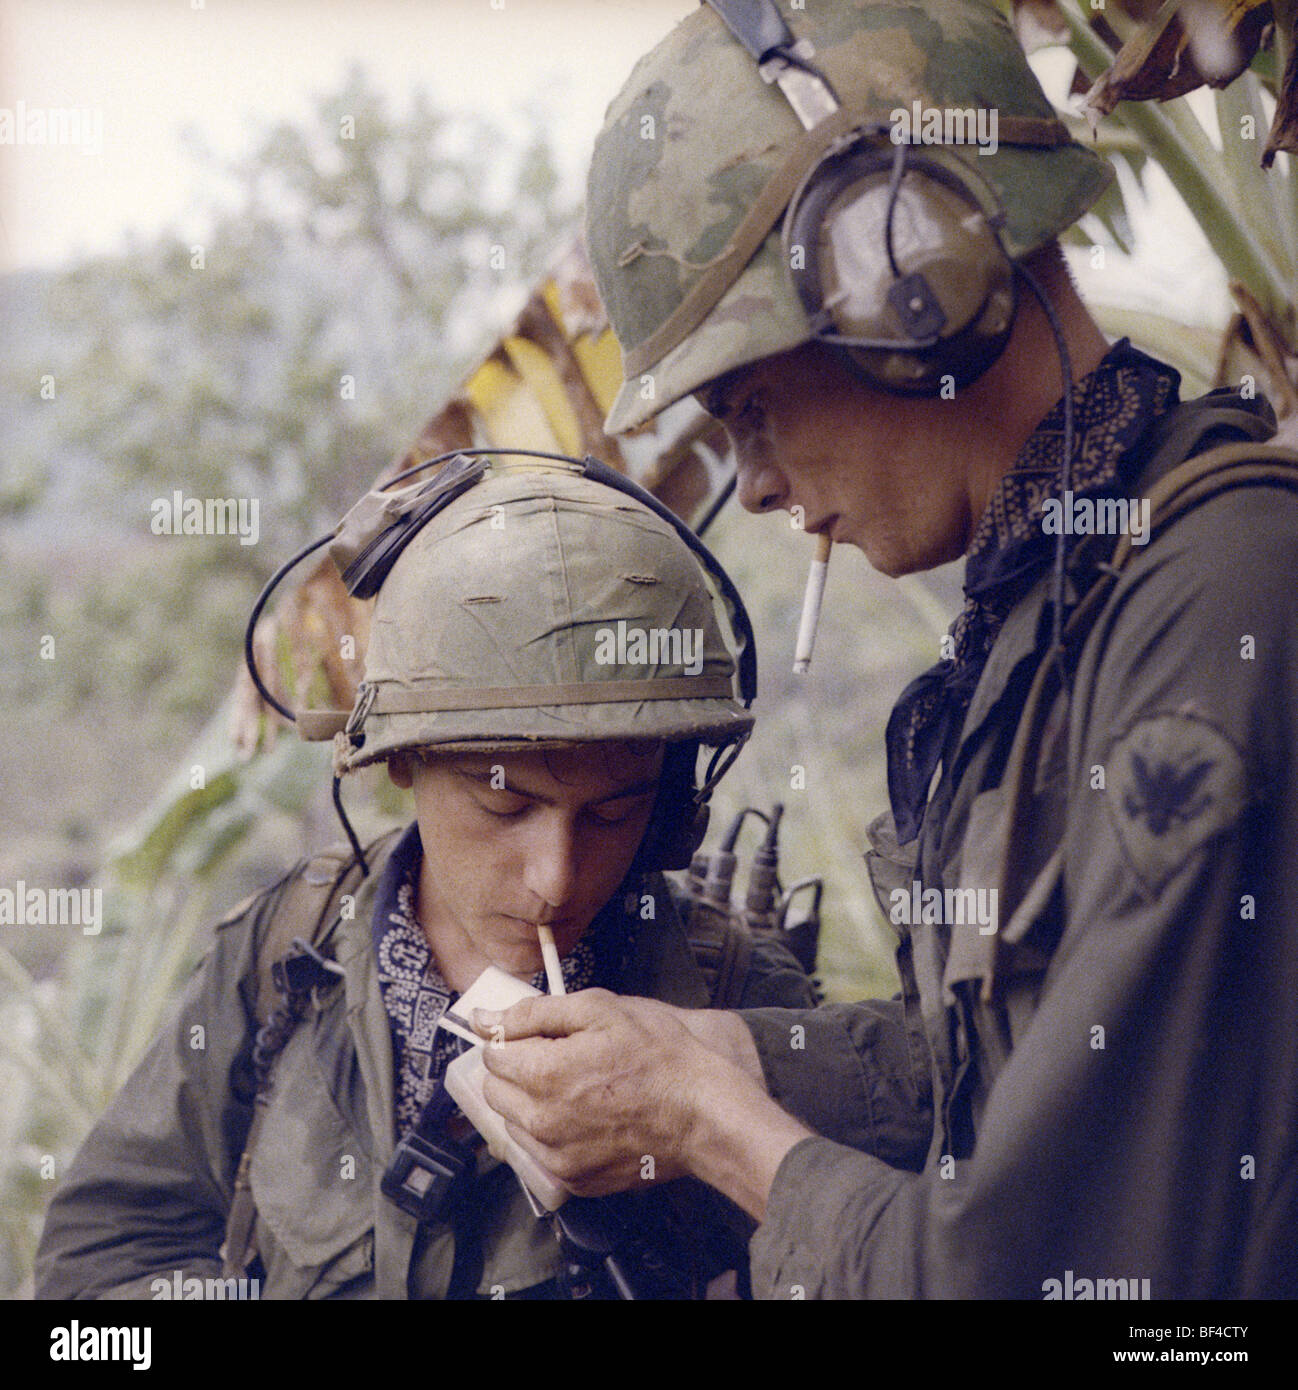 Members of B Troop, 1st Squadron, 9th Cavalry light a cigarette during the Vietnam War in 1967. - Stock Image